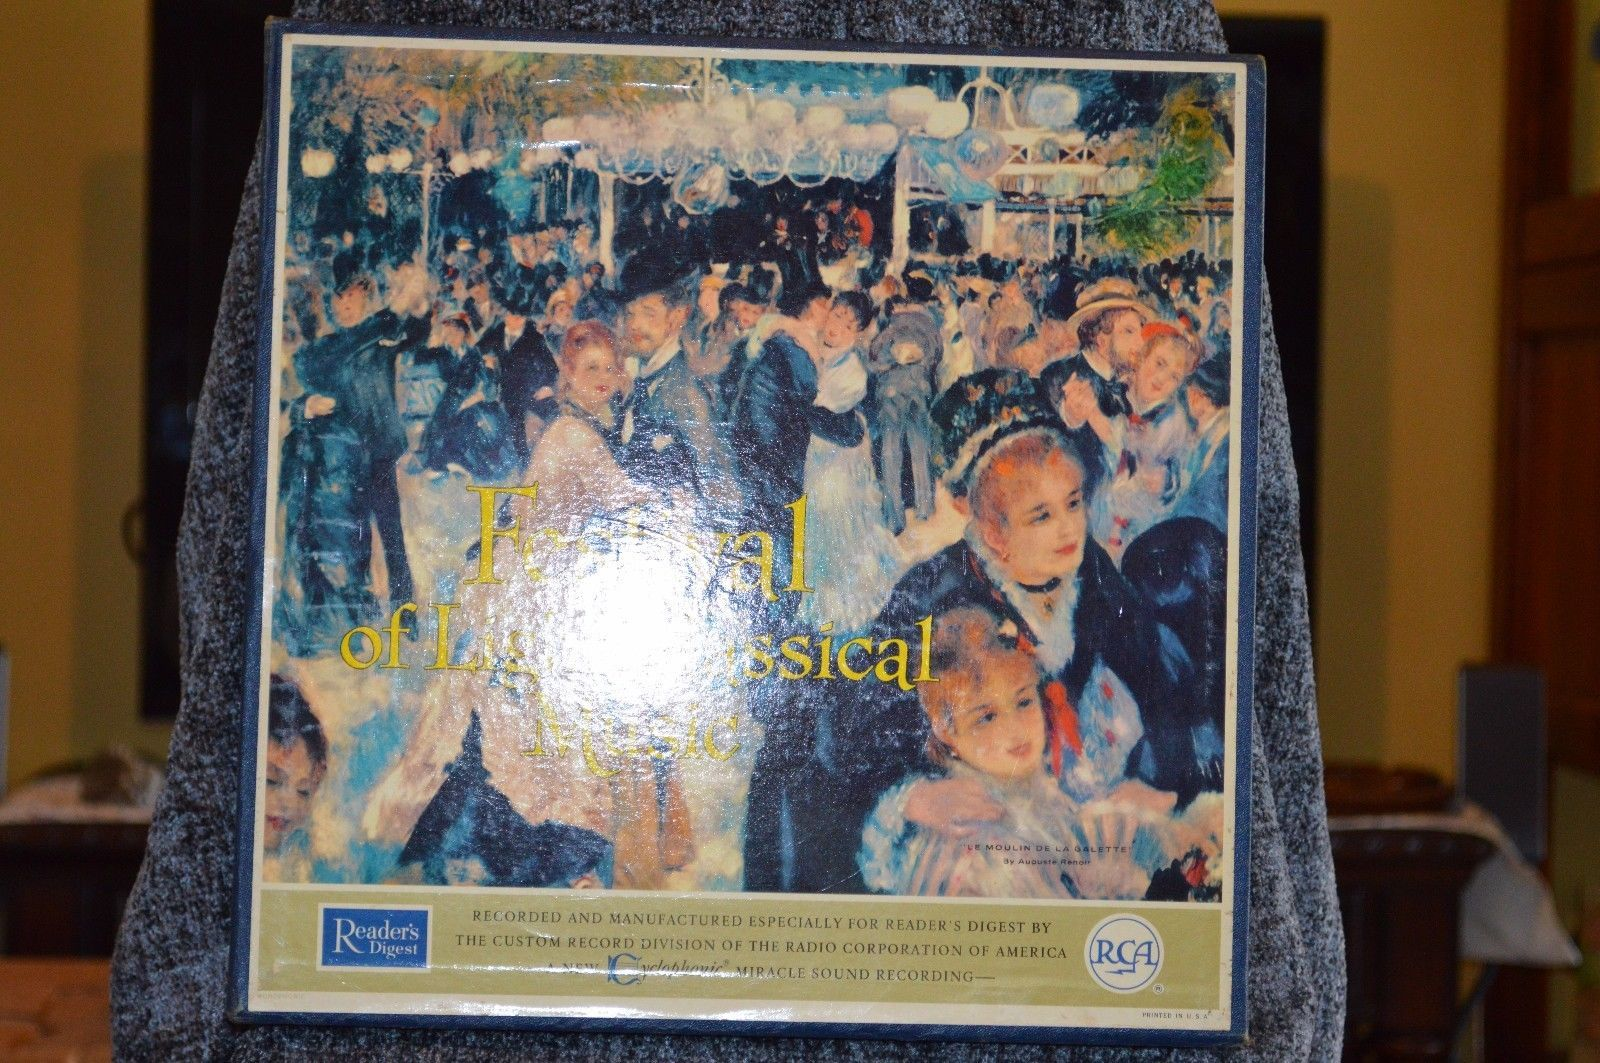 Festival of Light Classical Music, vinyl record set by RCA